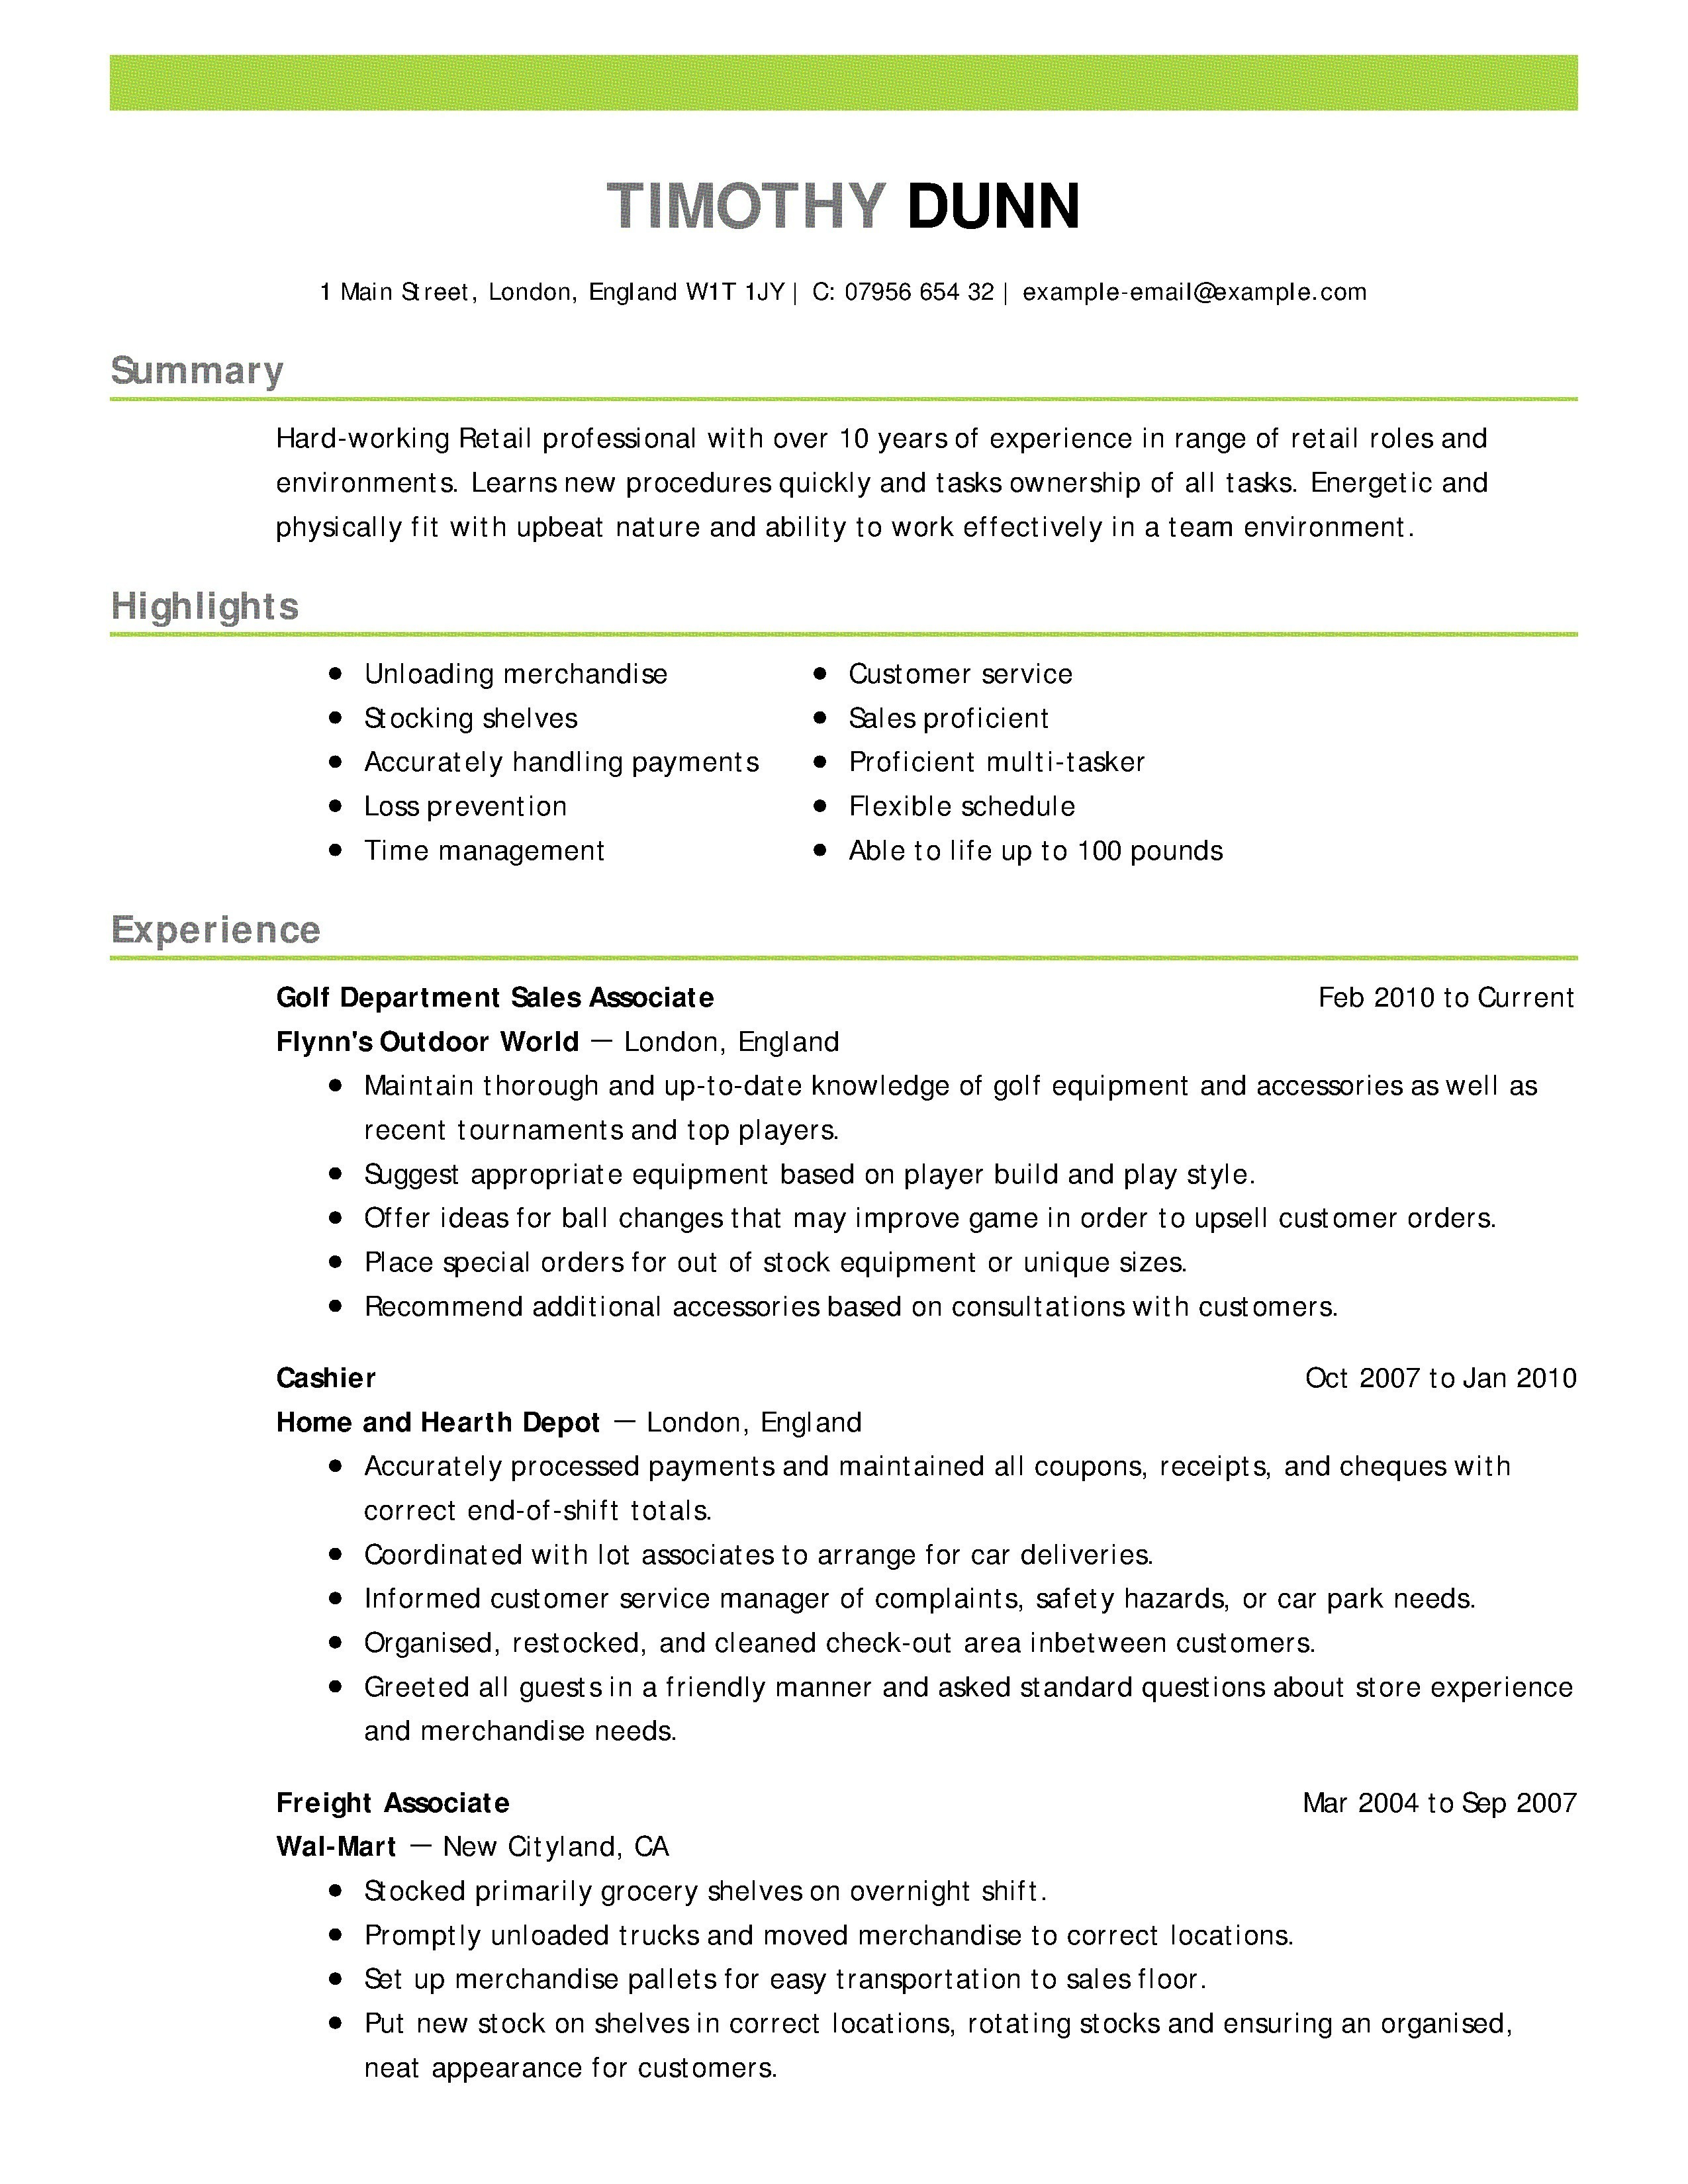 Food Service Manager Resume - District Manager Resume Save Food Service Manager Resume